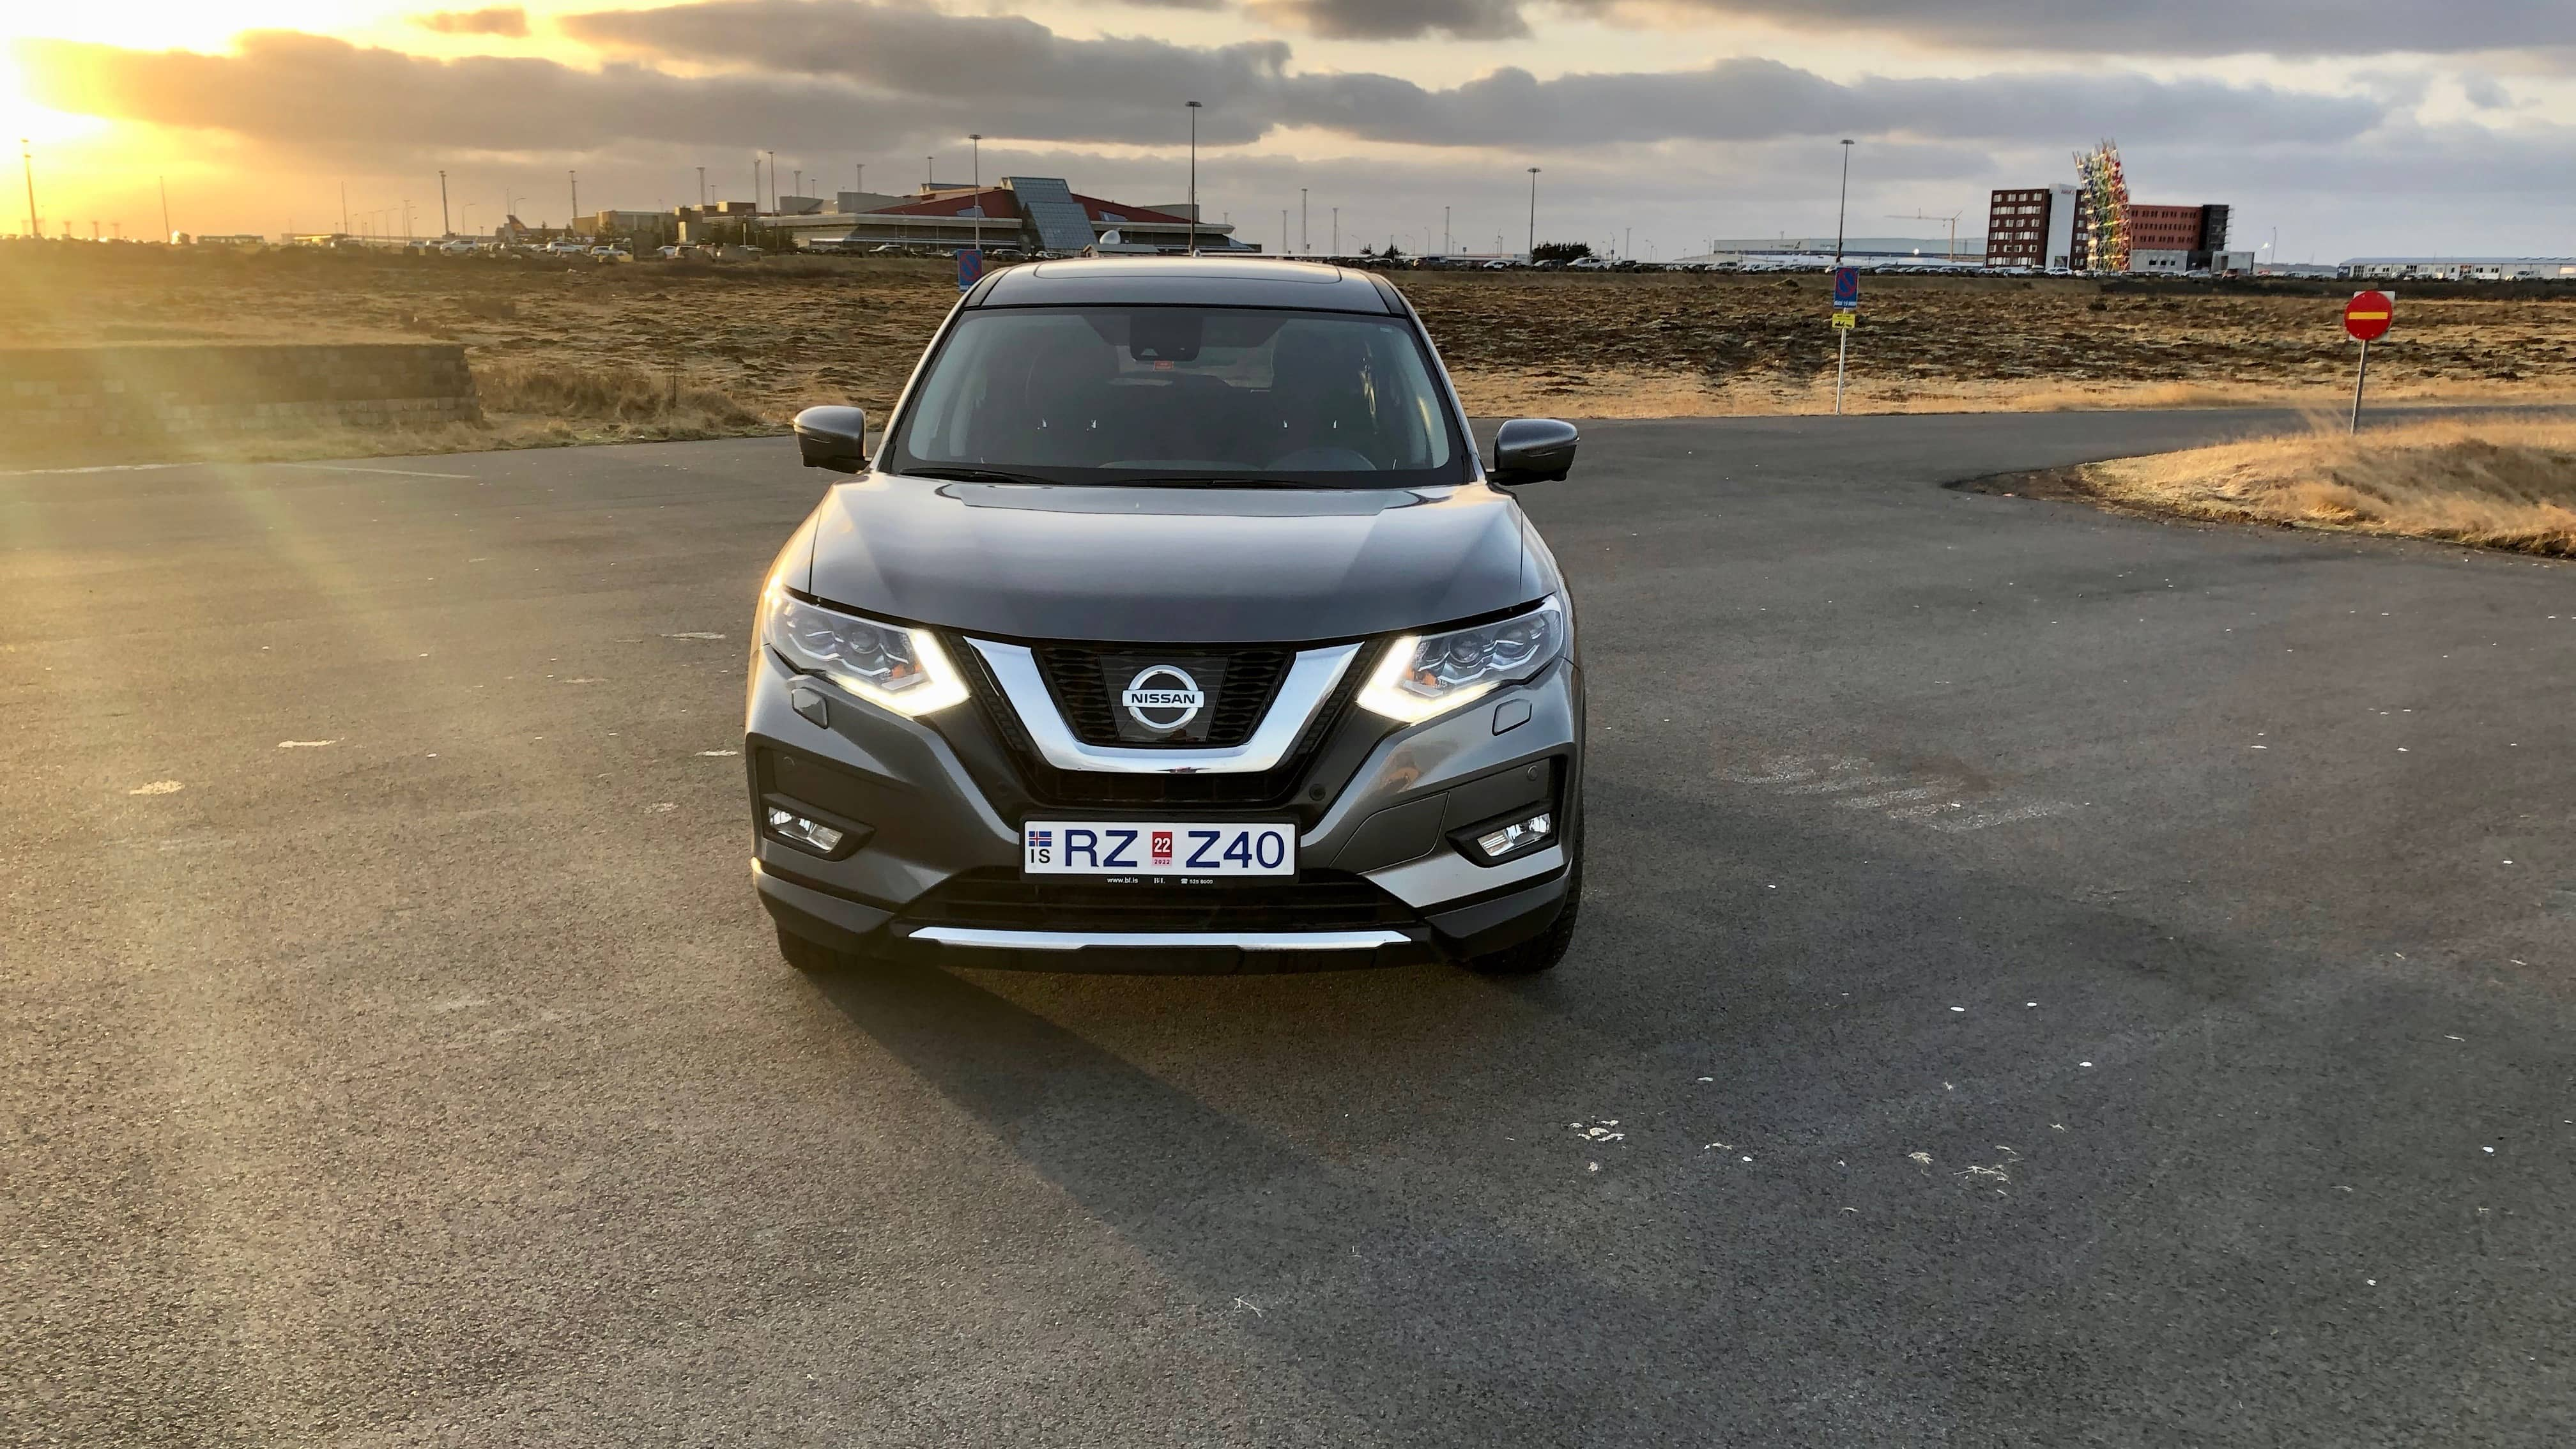 7 Seat Rental Car In Iceland - Rent A Nissan Rogue   Lotus